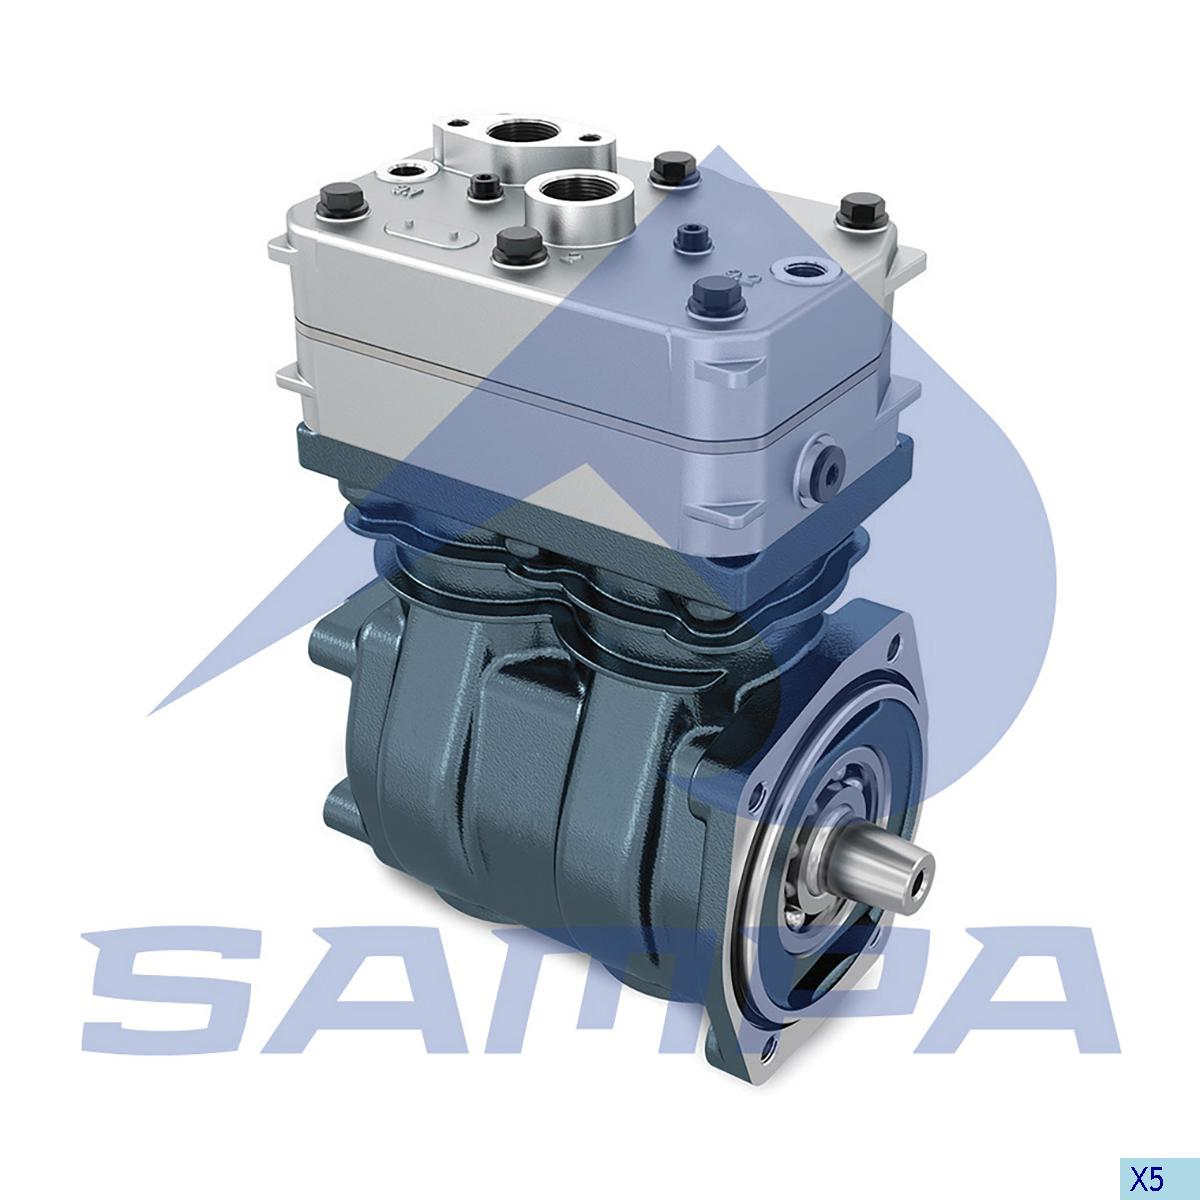 Compressor, Daf, Compressed Air System